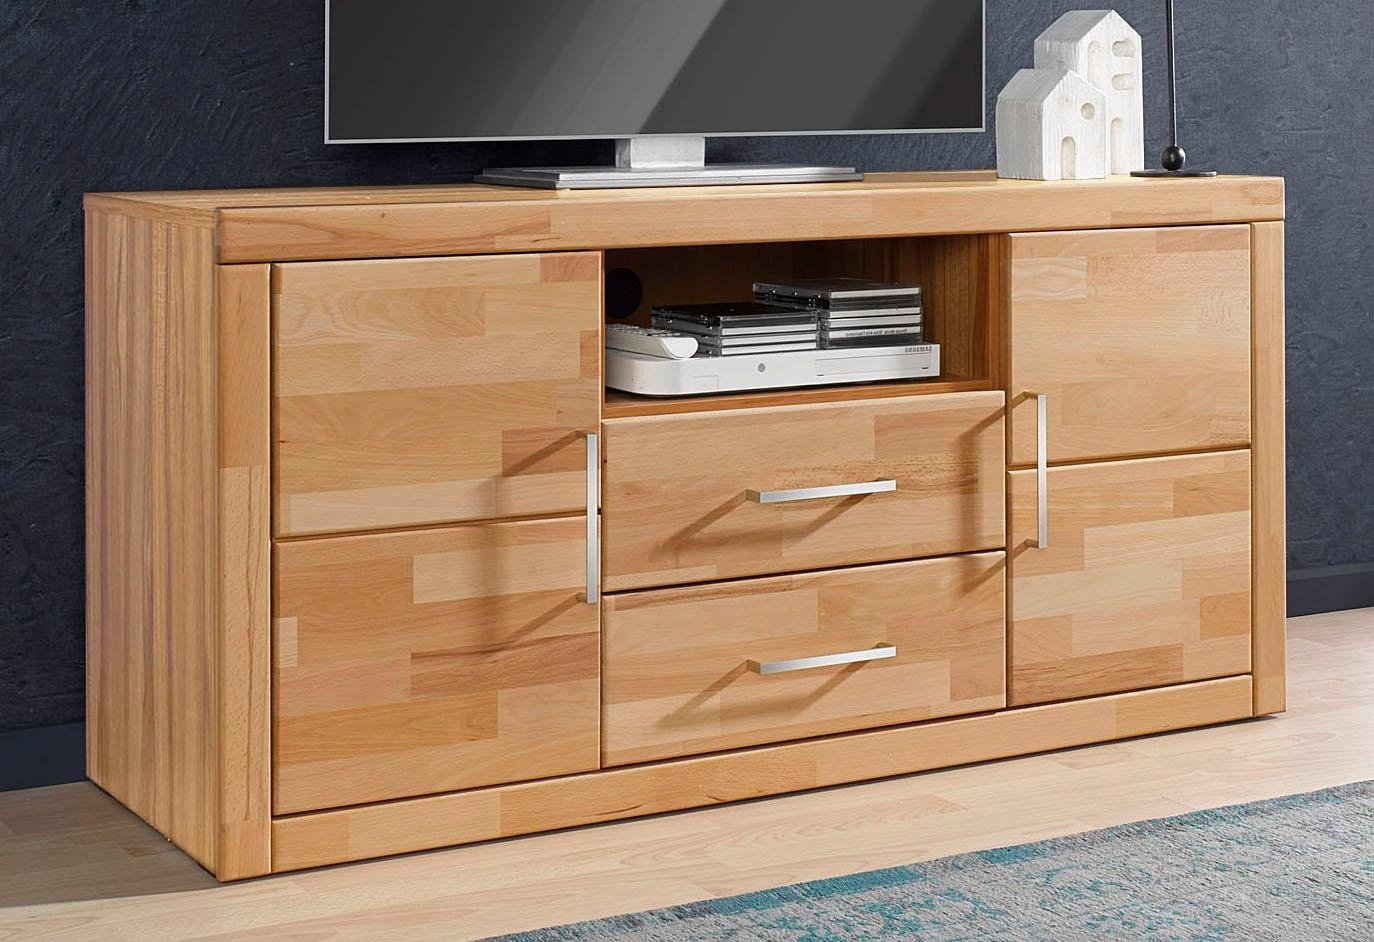 Places of Style roomed TV-meubel, breedte 130 cm online kopen op otto.nl